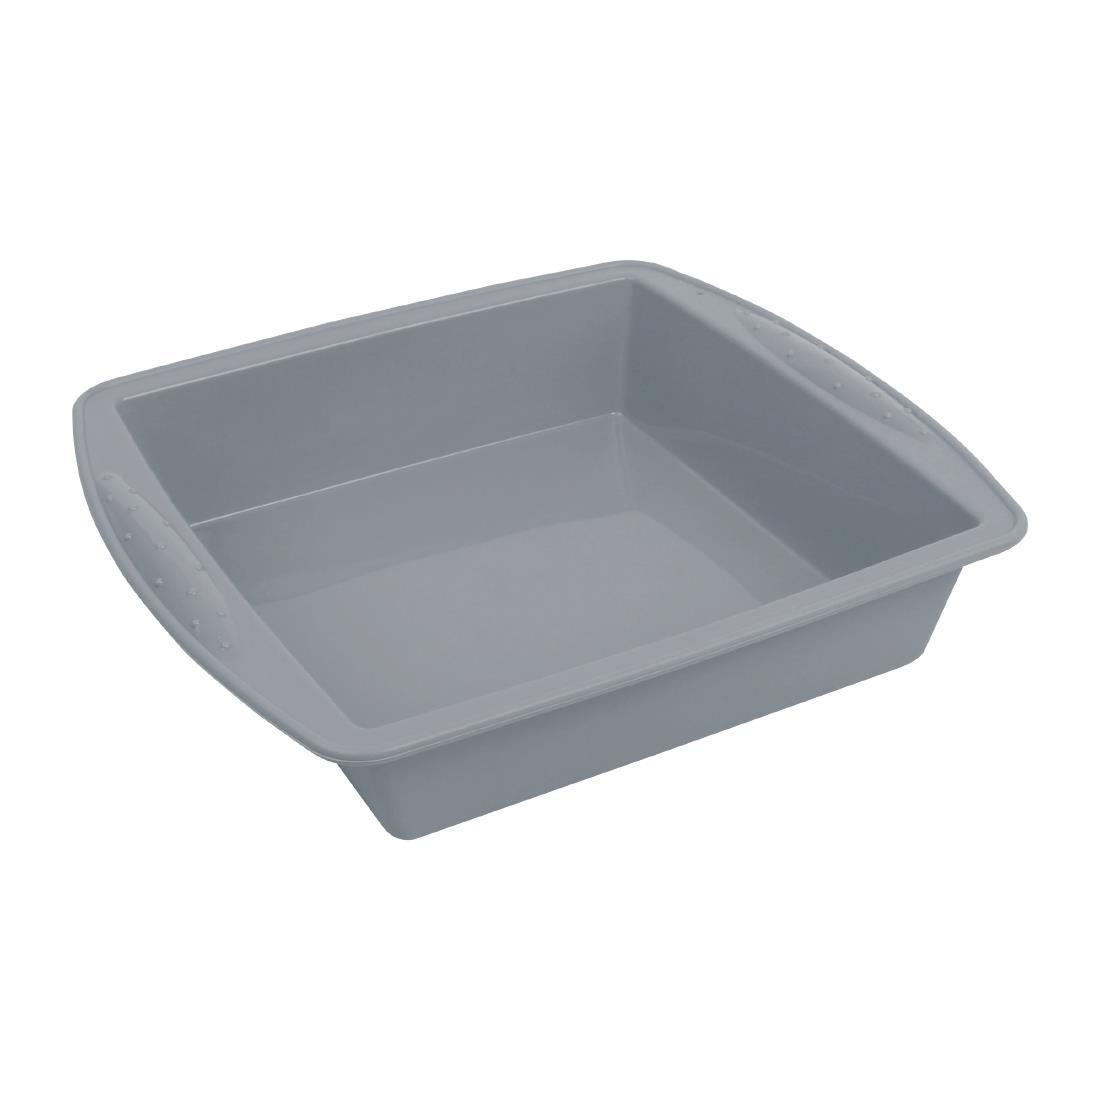 Vogue Flexible Silicone Square Bake Pan 245mm - Each - DA532